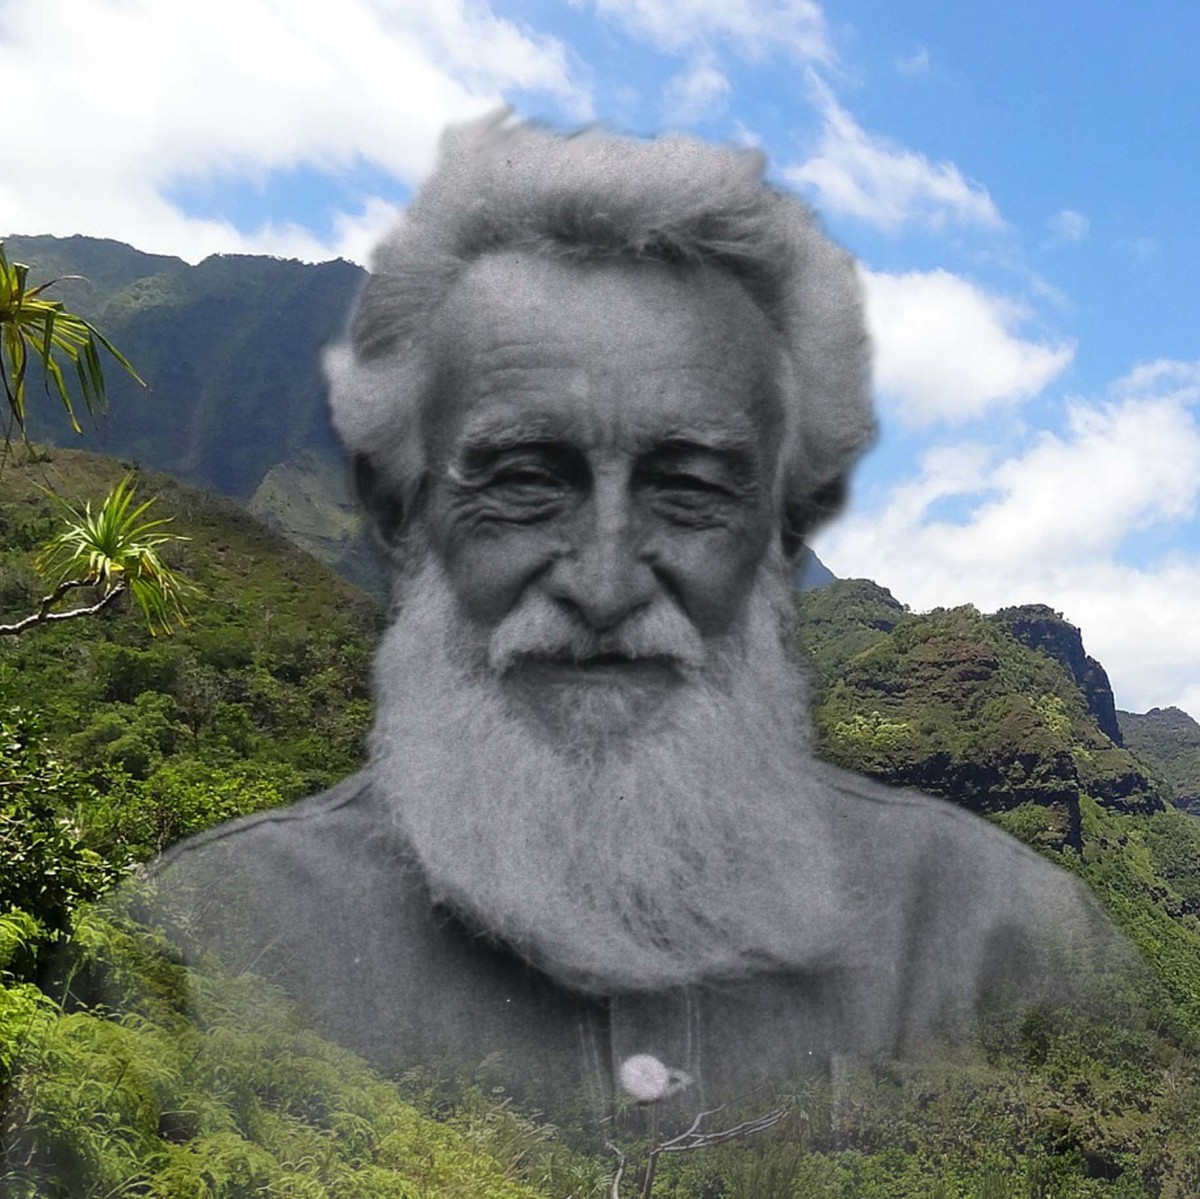 Br. Joseph Dutton, a Saint on Molokai?